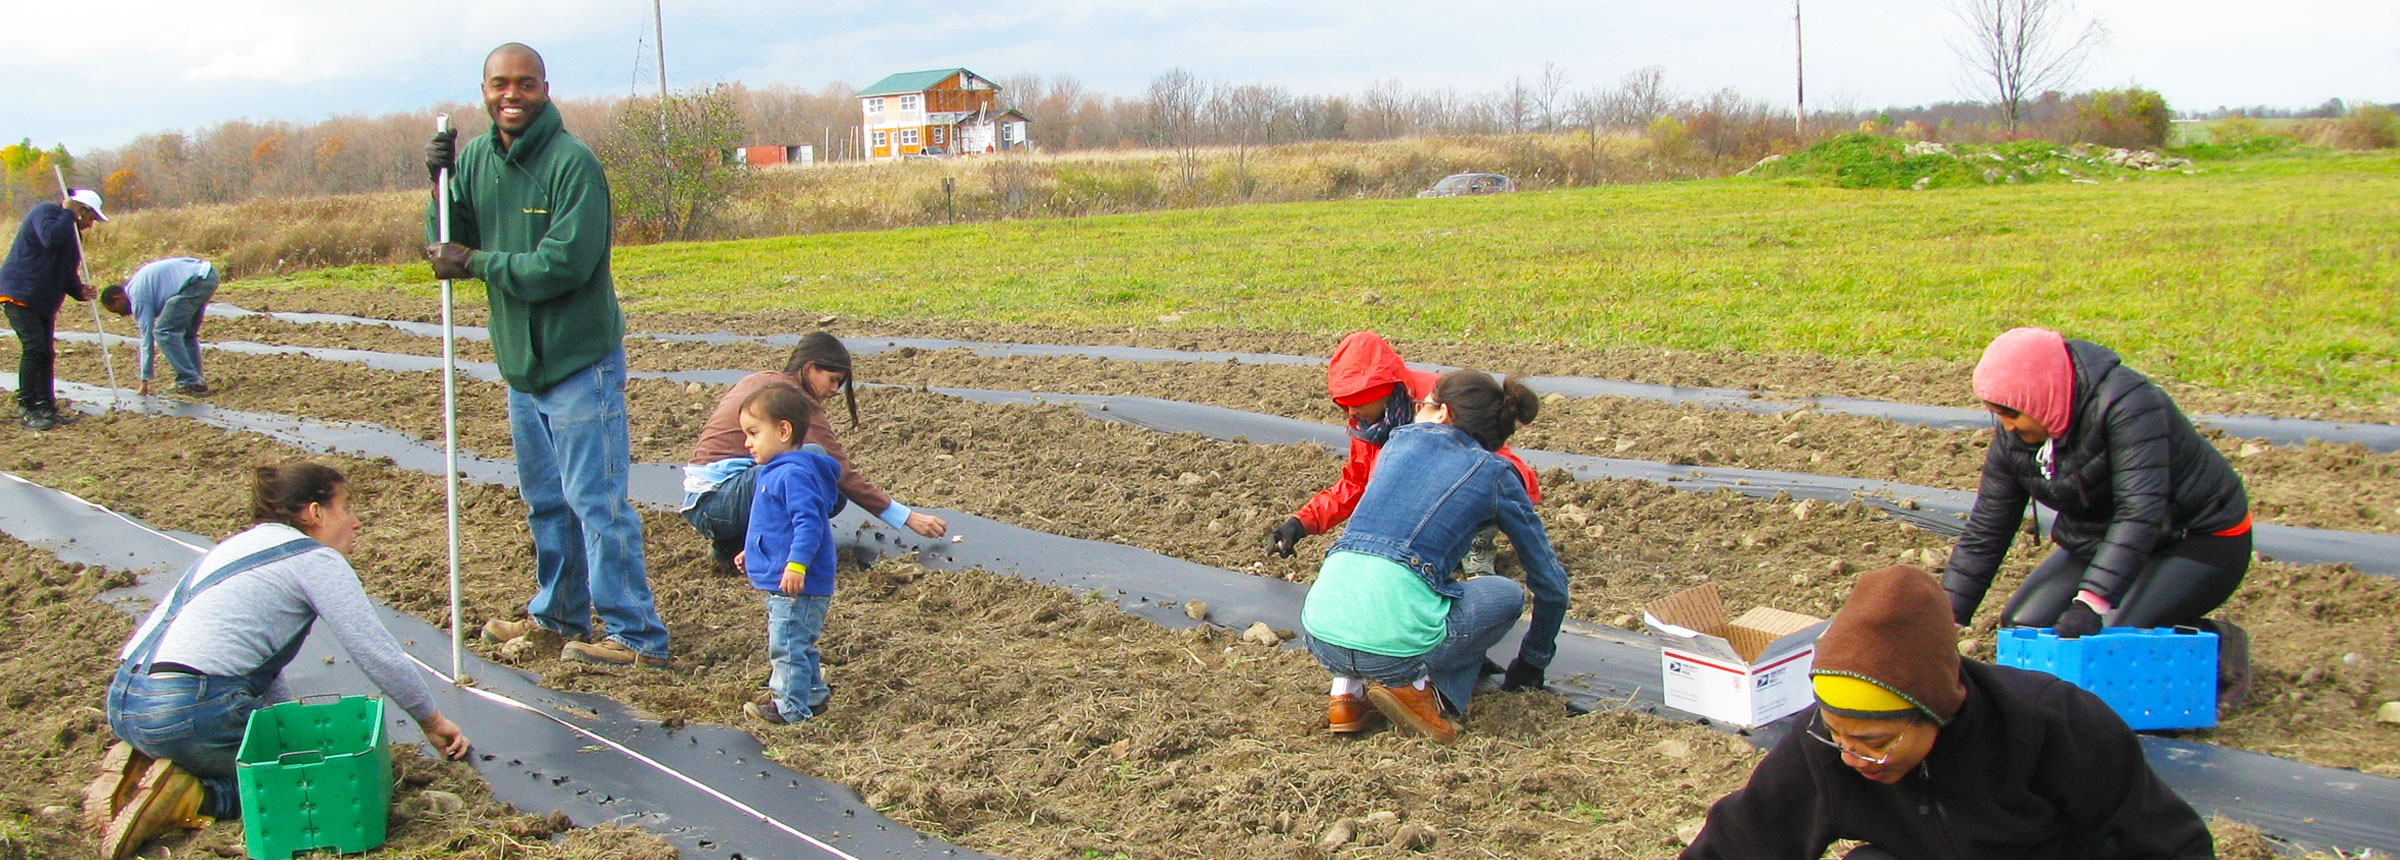 People planting vegetables